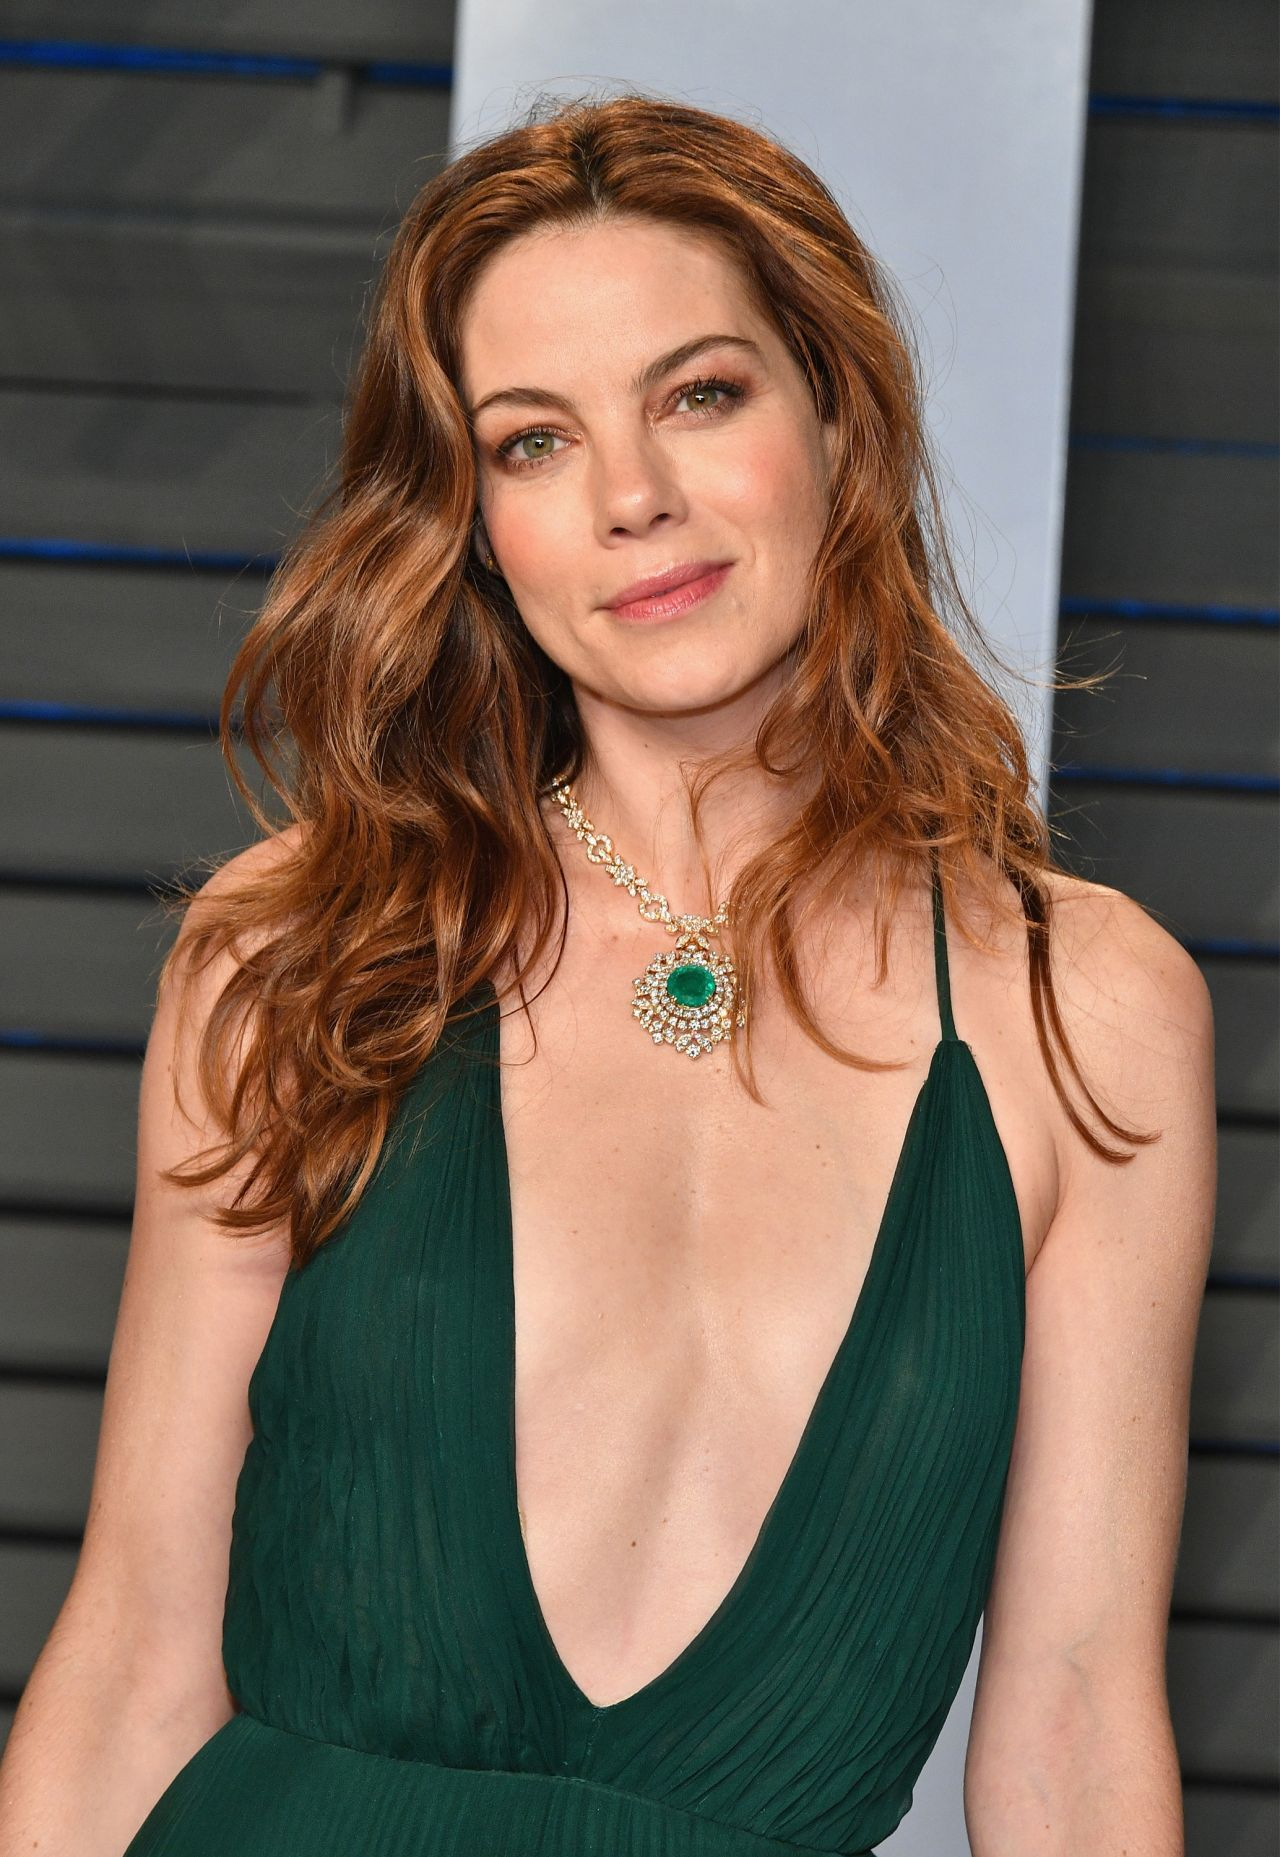 http://celebmafia.com/wp-content/uploads/2018/03/michelle-monaghan-2018-vanity-fair-oscar-party-in-beverly-hills-2.jpg